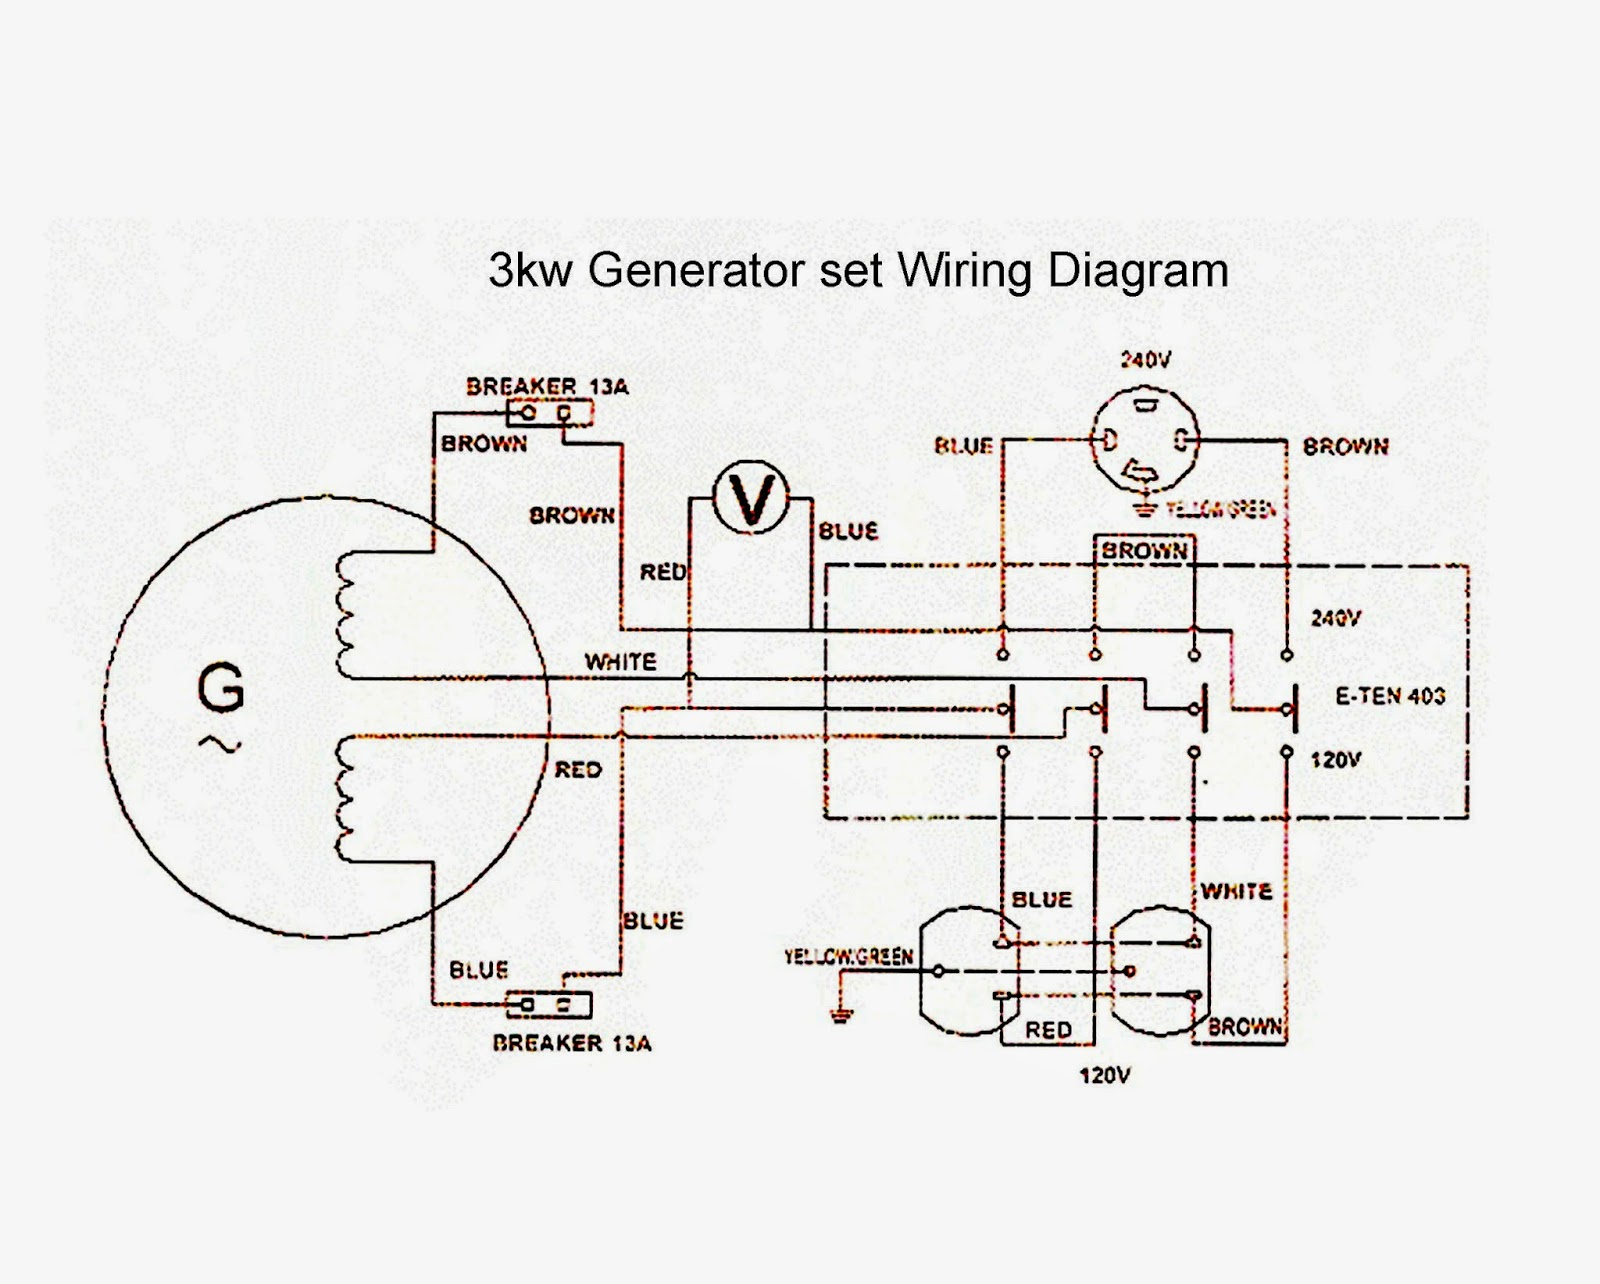 hight resolution of house wiring diagram freeware wiring diagram advance free home wiring diagram software home wiring diagram freeware